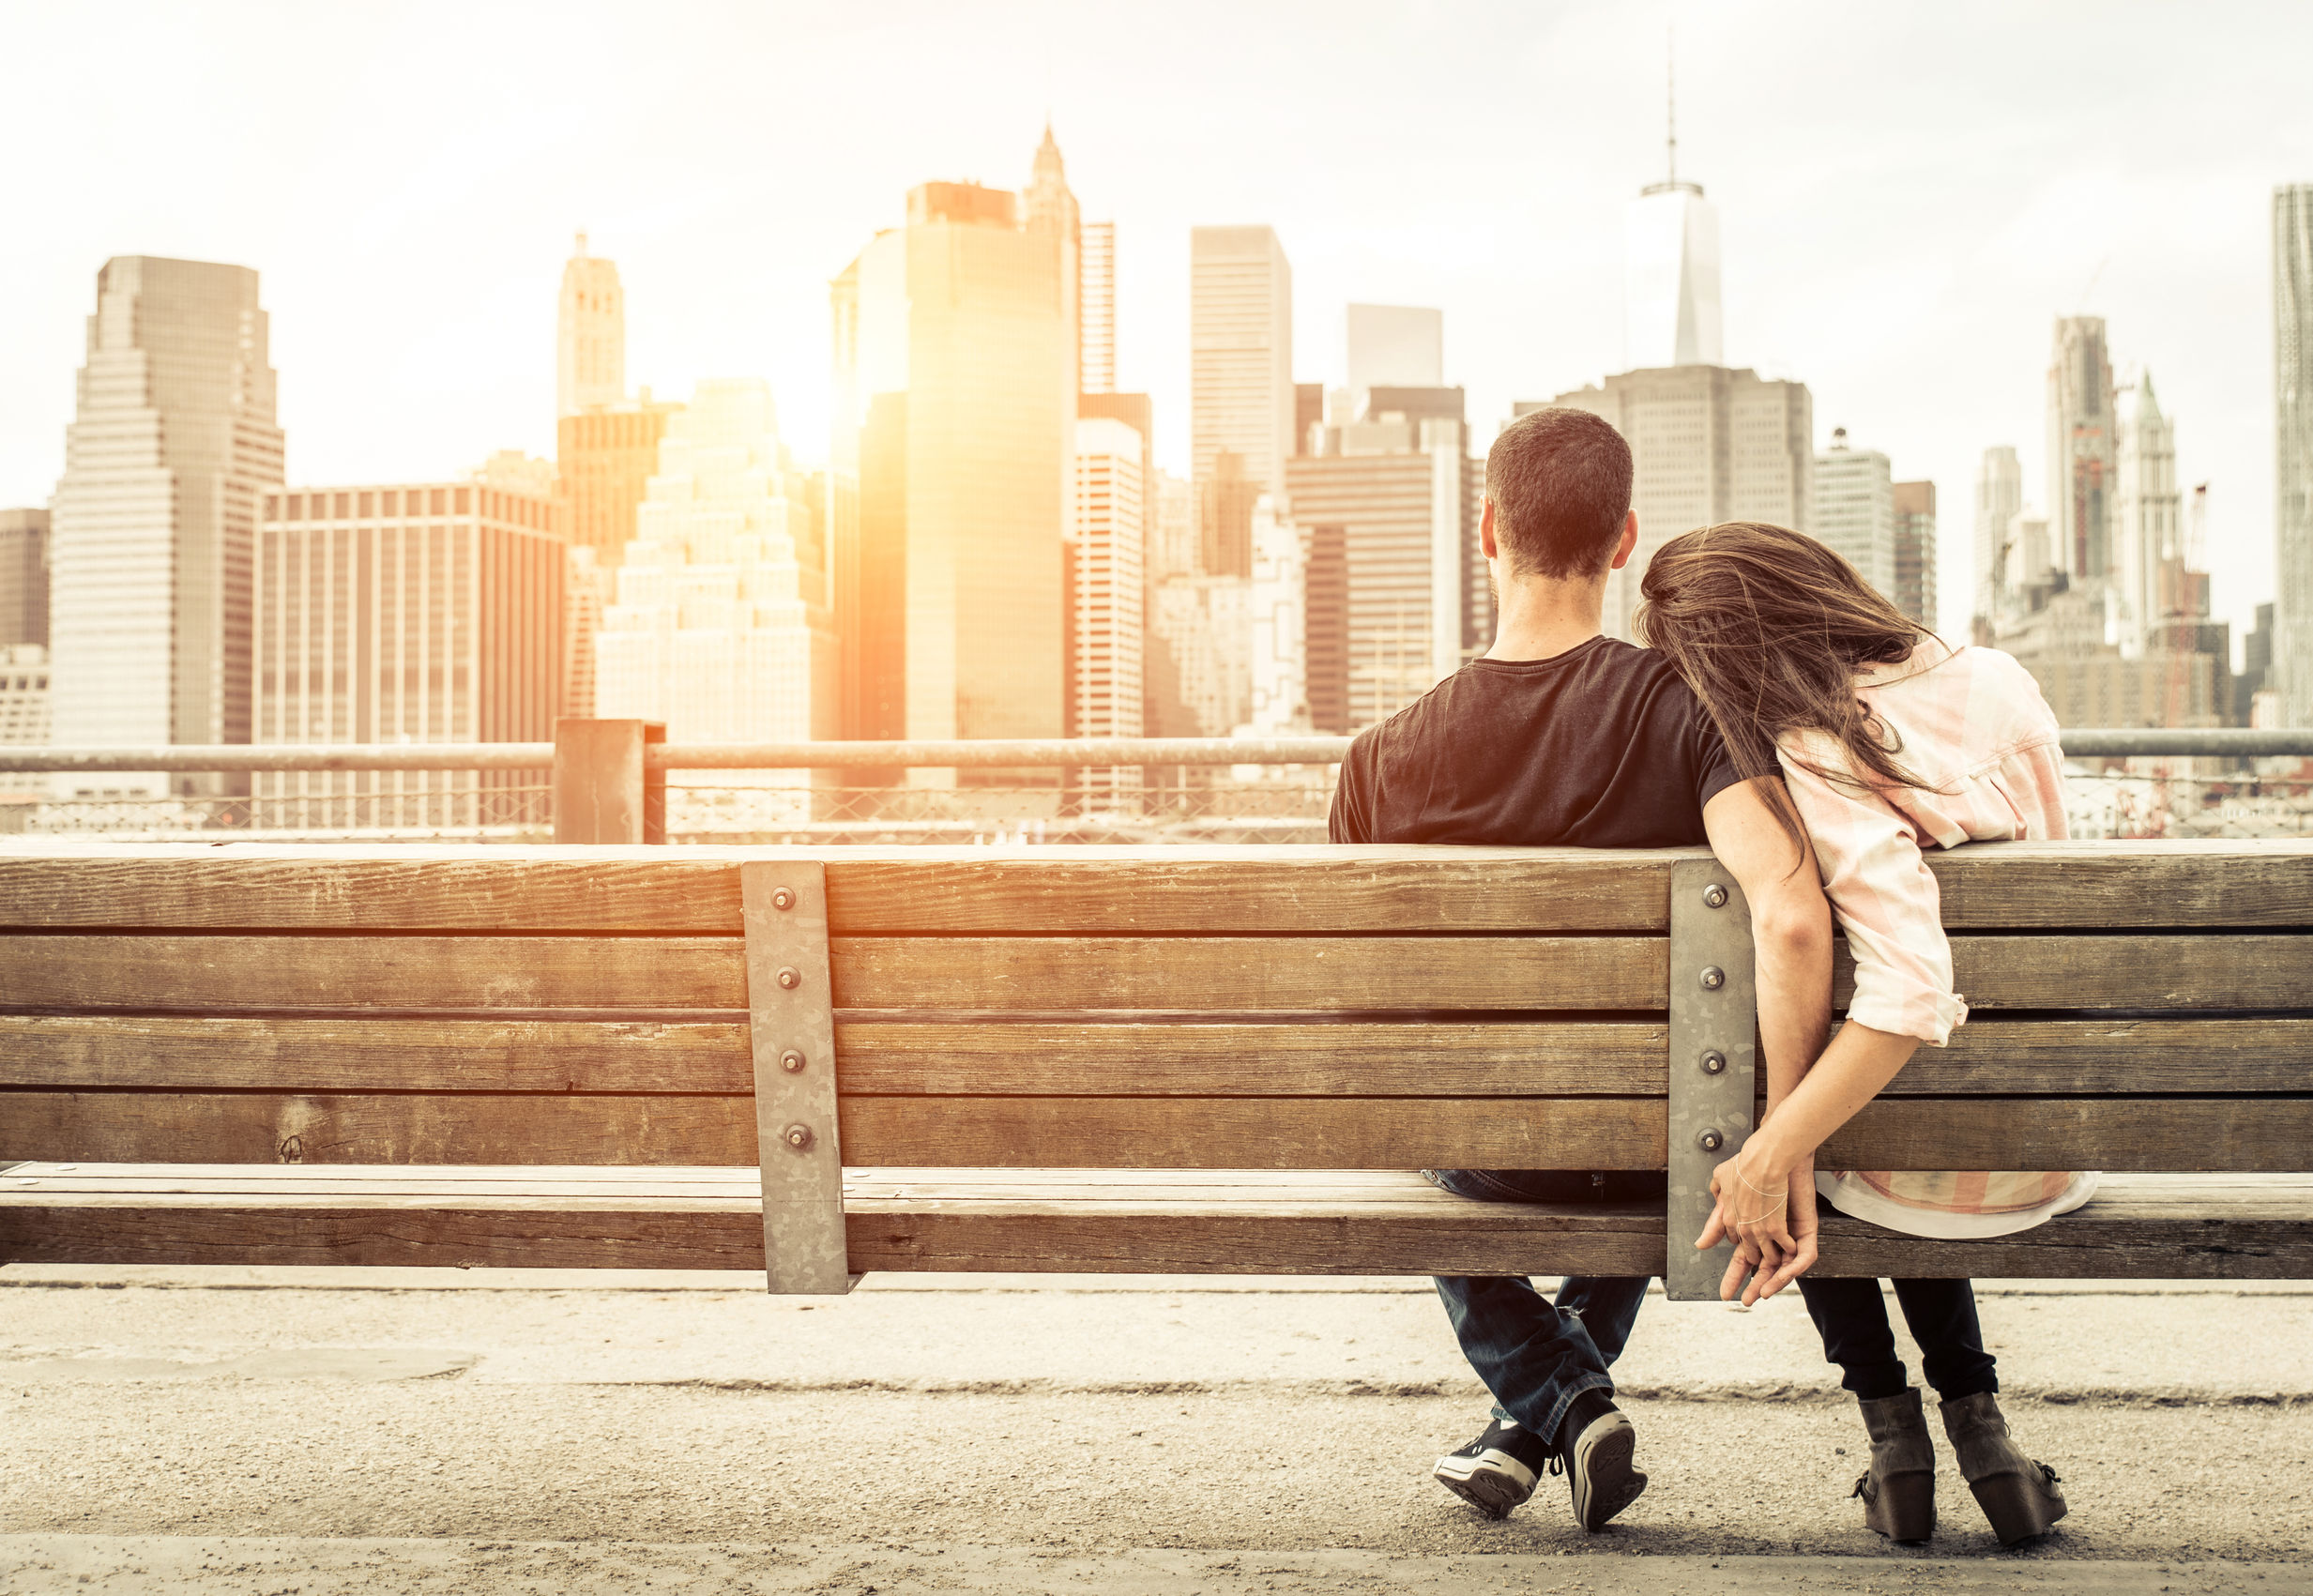 47114383 - couple relaxing on new york bench in front of the skyline at sunset time. concept about love,relationship, and travel